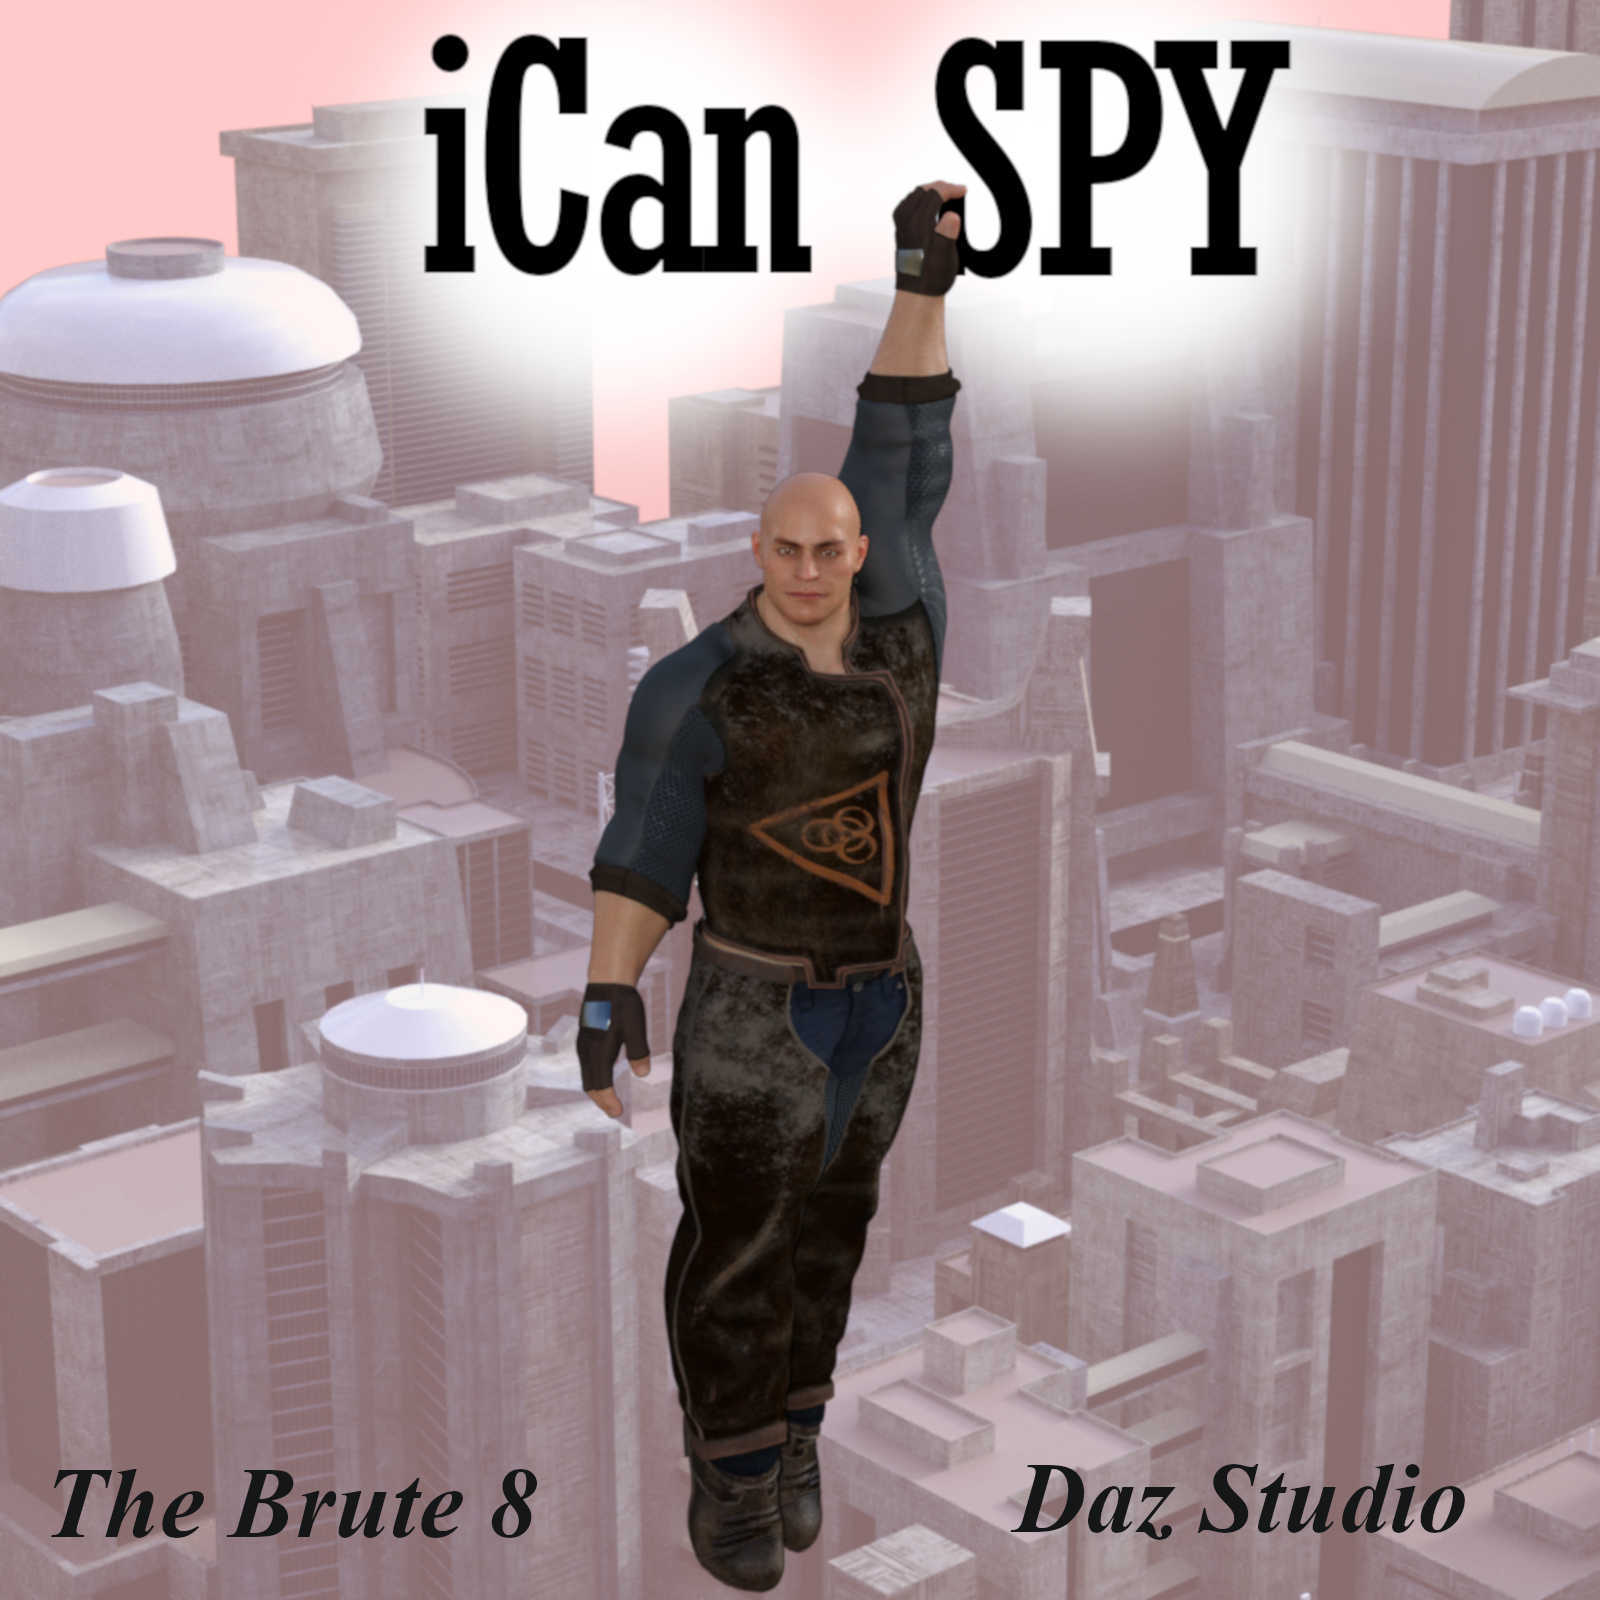 iCan SPY Poses for The Brute 8 (TB8) in Daz Studio